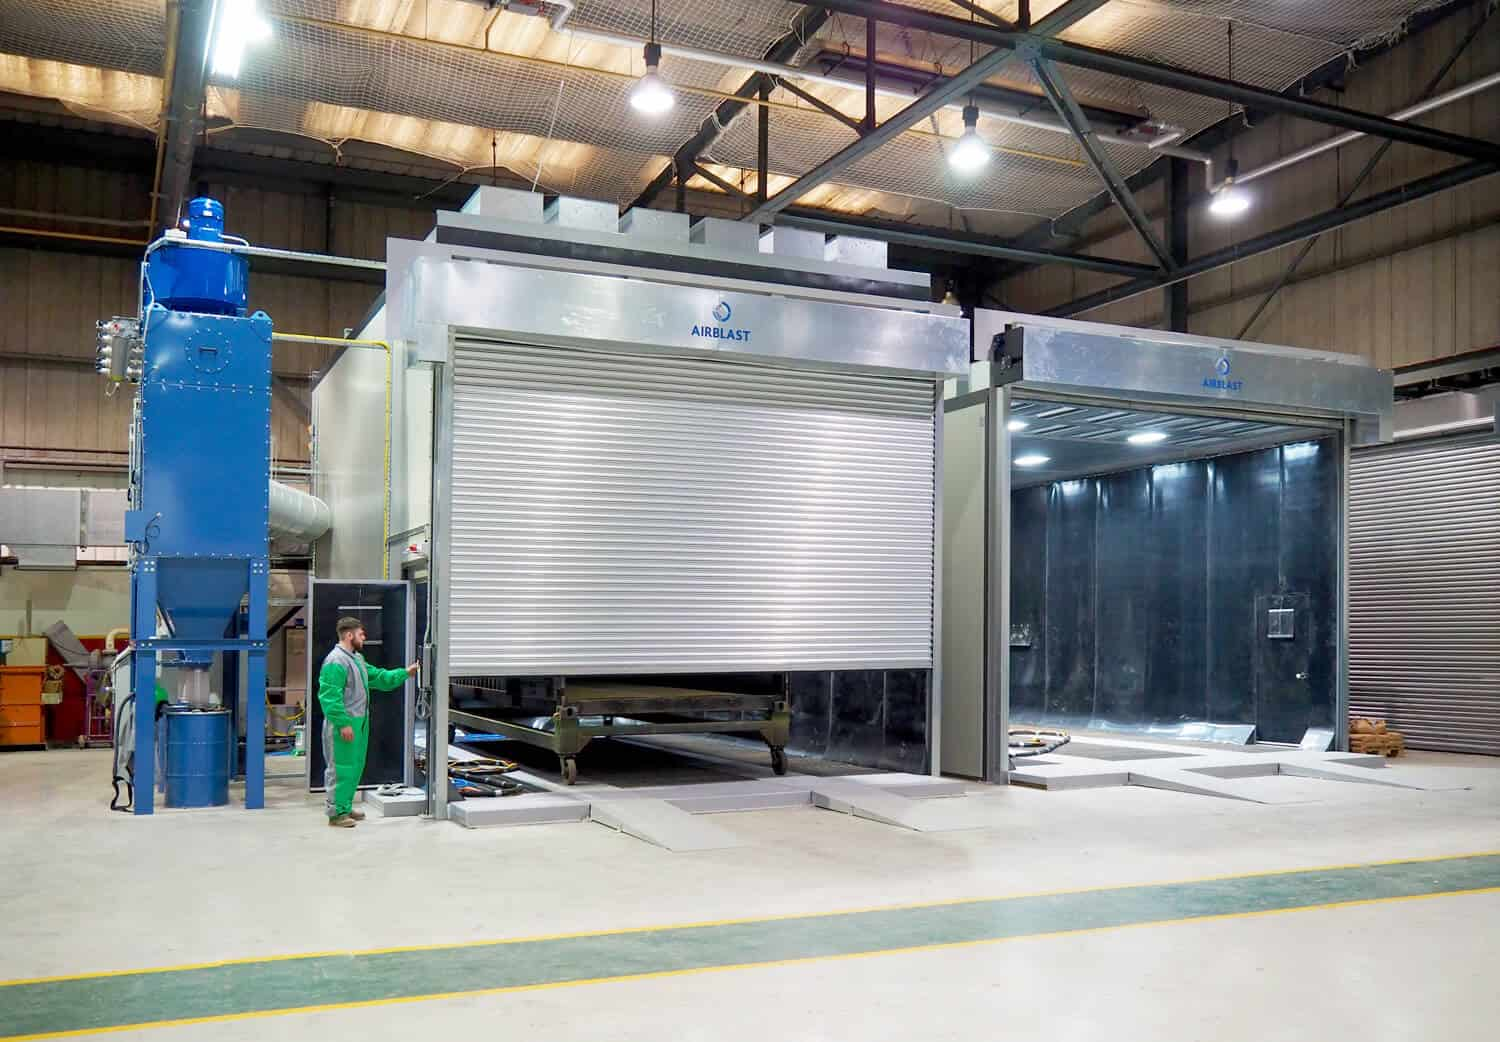 Airblast case study on improving the efficiency of an existing blast room and spray booth